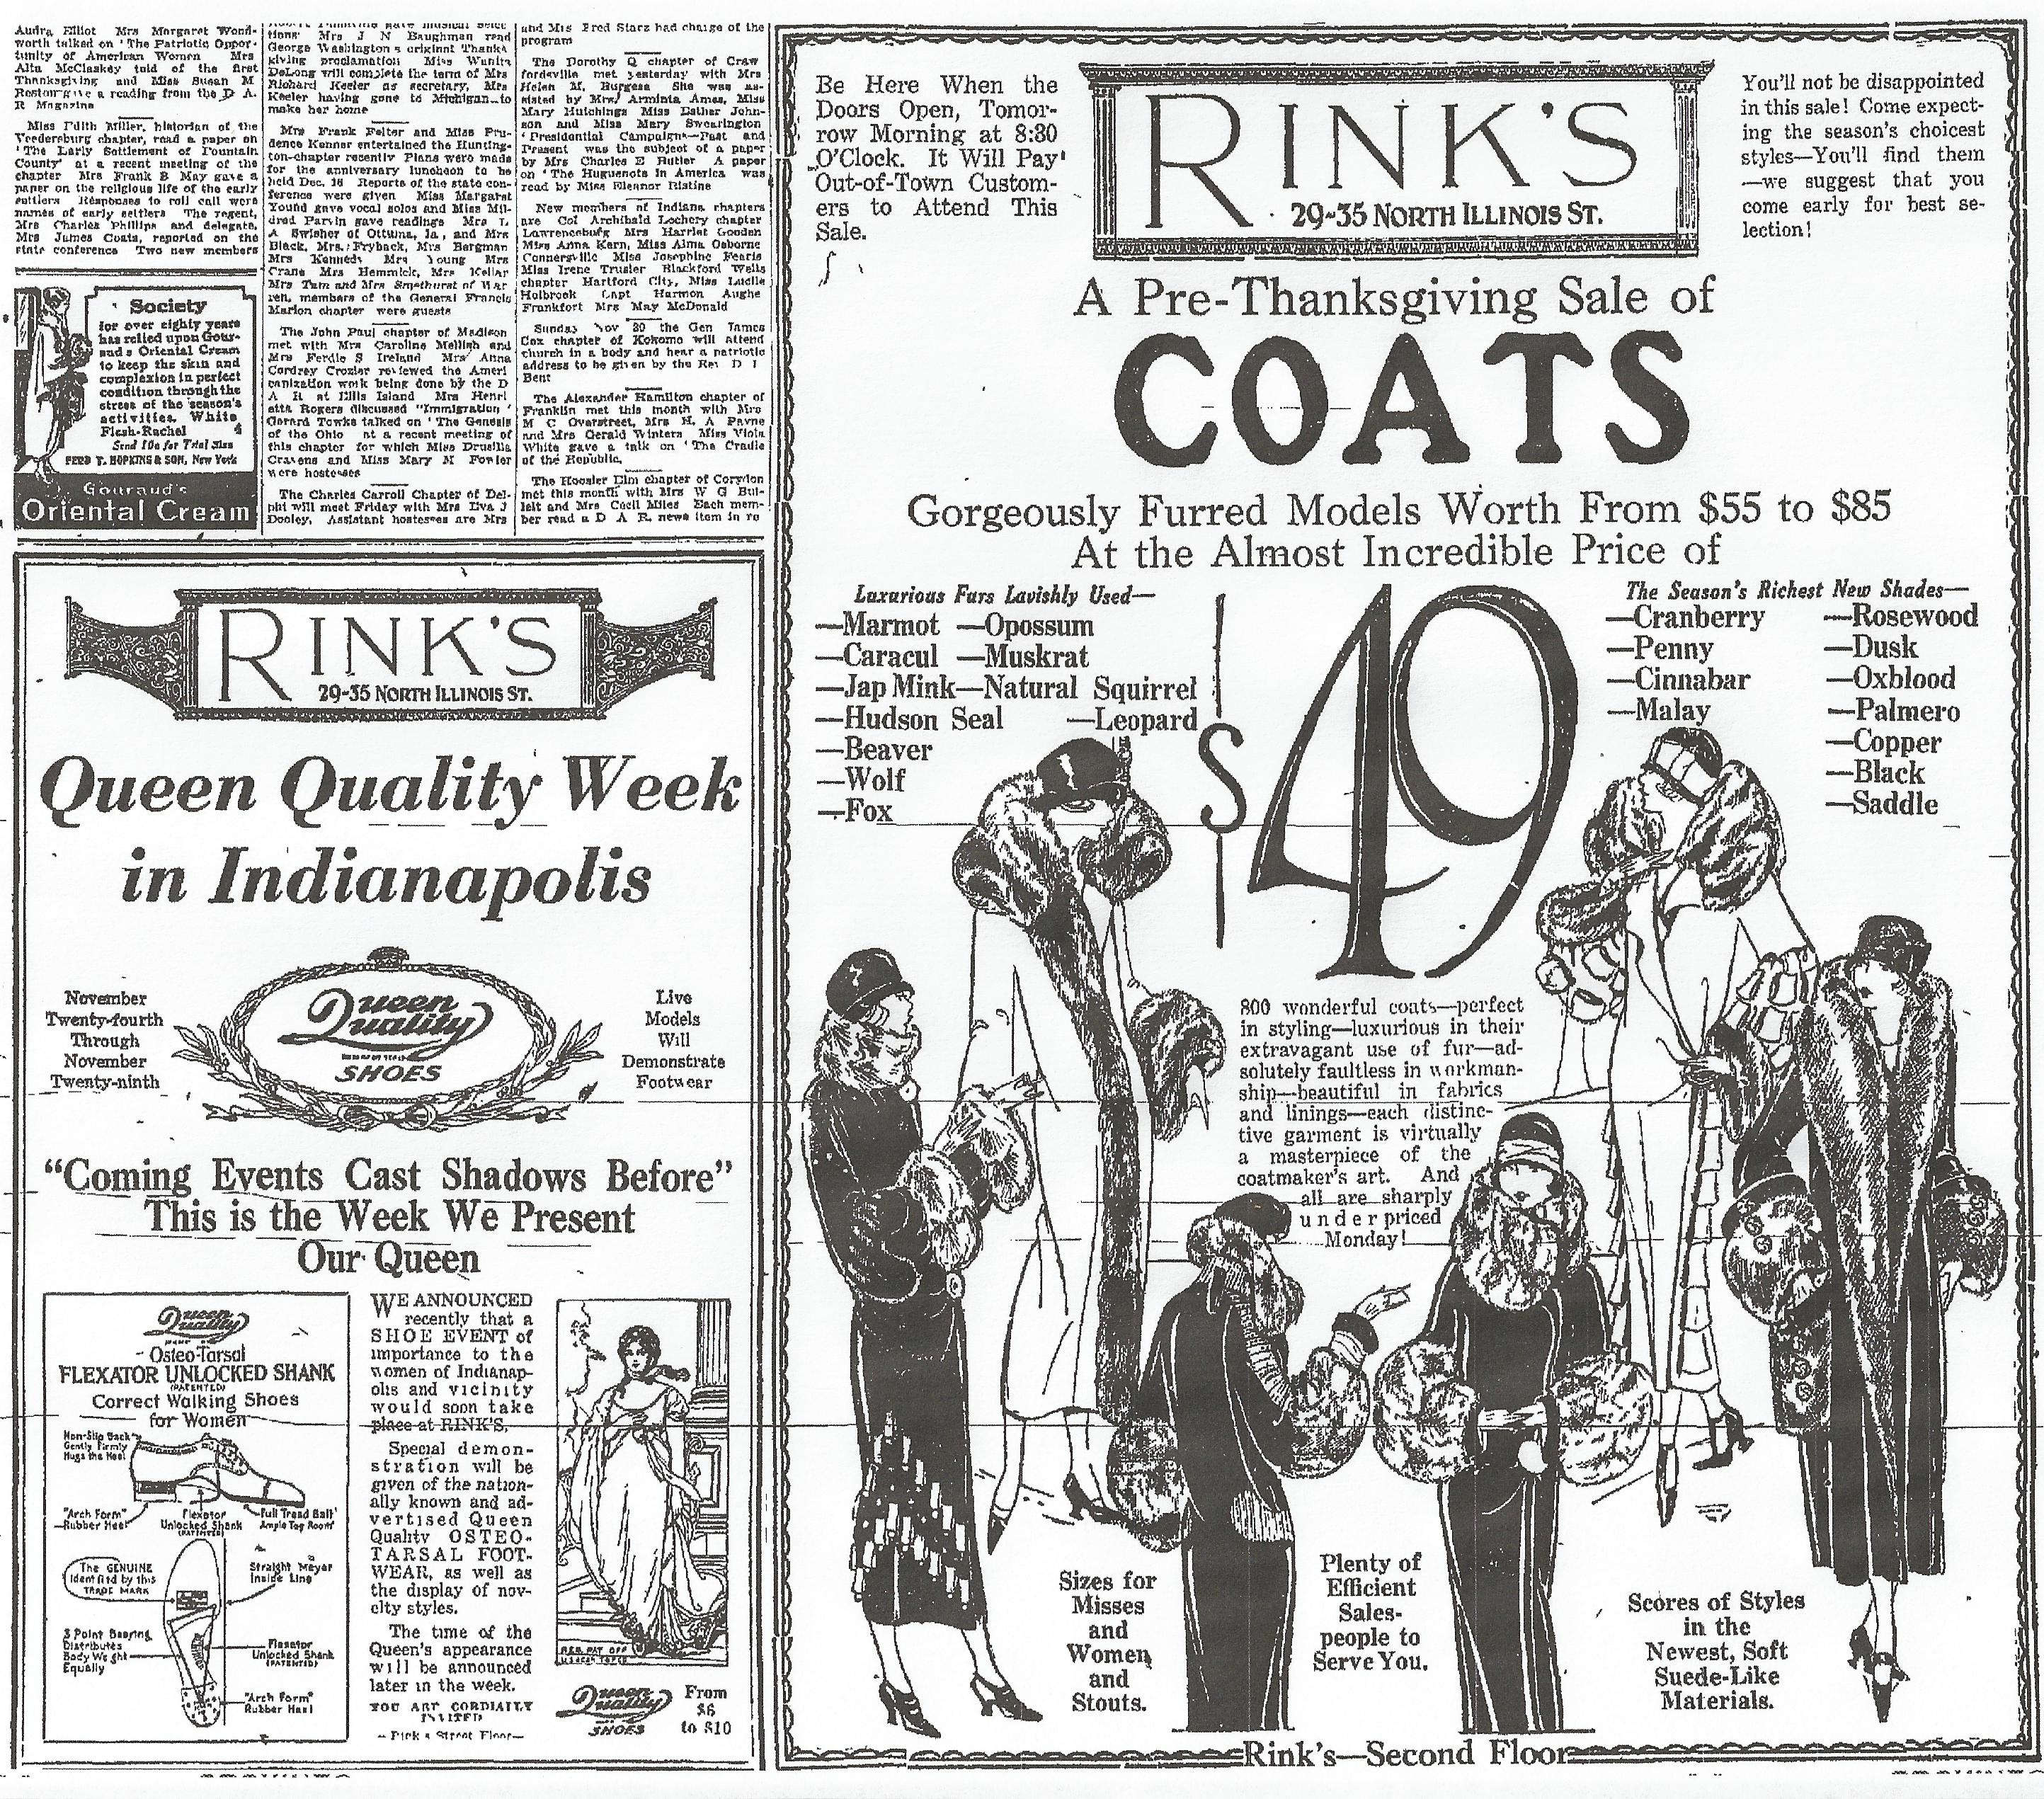 Sunday Adverts: Rink's for Coats